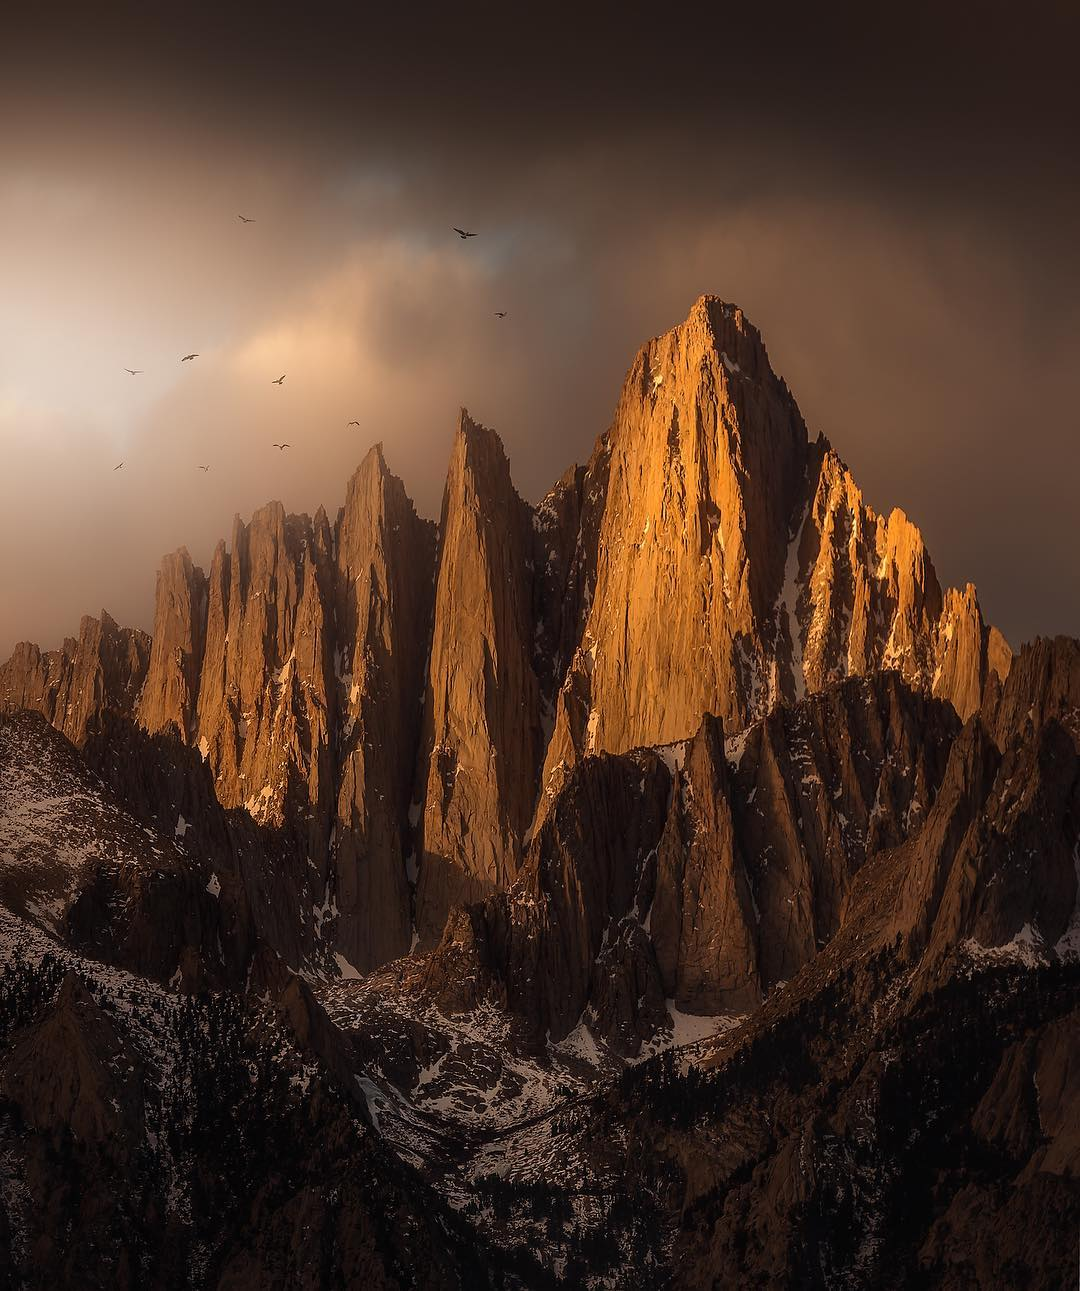 Mount Whitney, California - scbmobile - bit.ly2xn2uT6